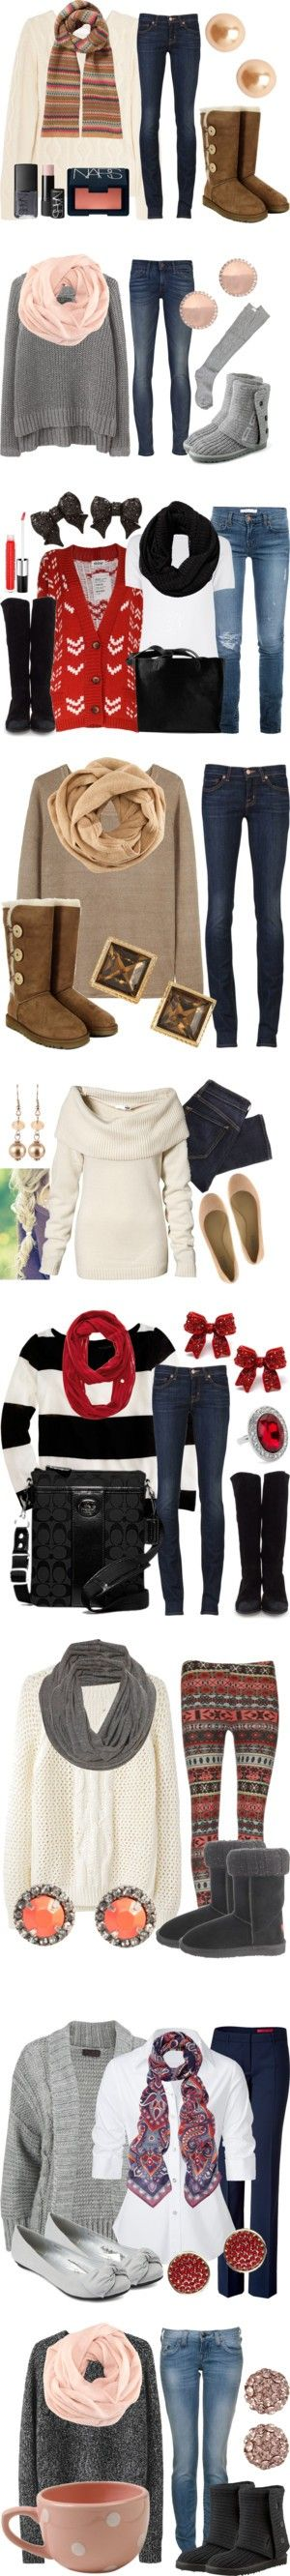 fall clothes!!! i love sweaters